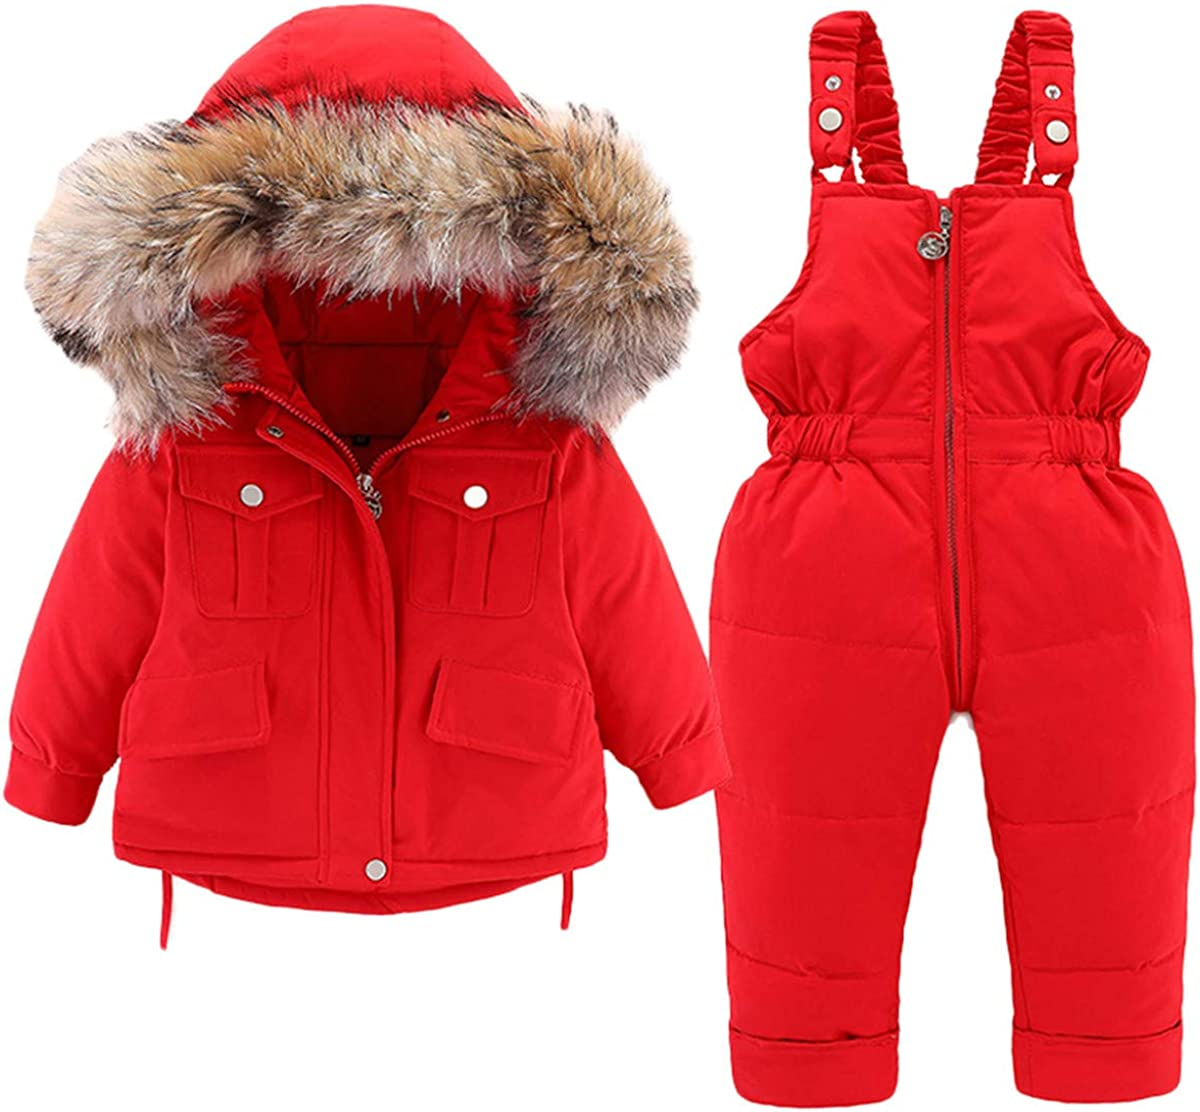 Baby Boys Girls Kids Hooded Artificial Fur Down Jacket Coat and Ski Bib Pants Snowsuit Winter Outfit Sets